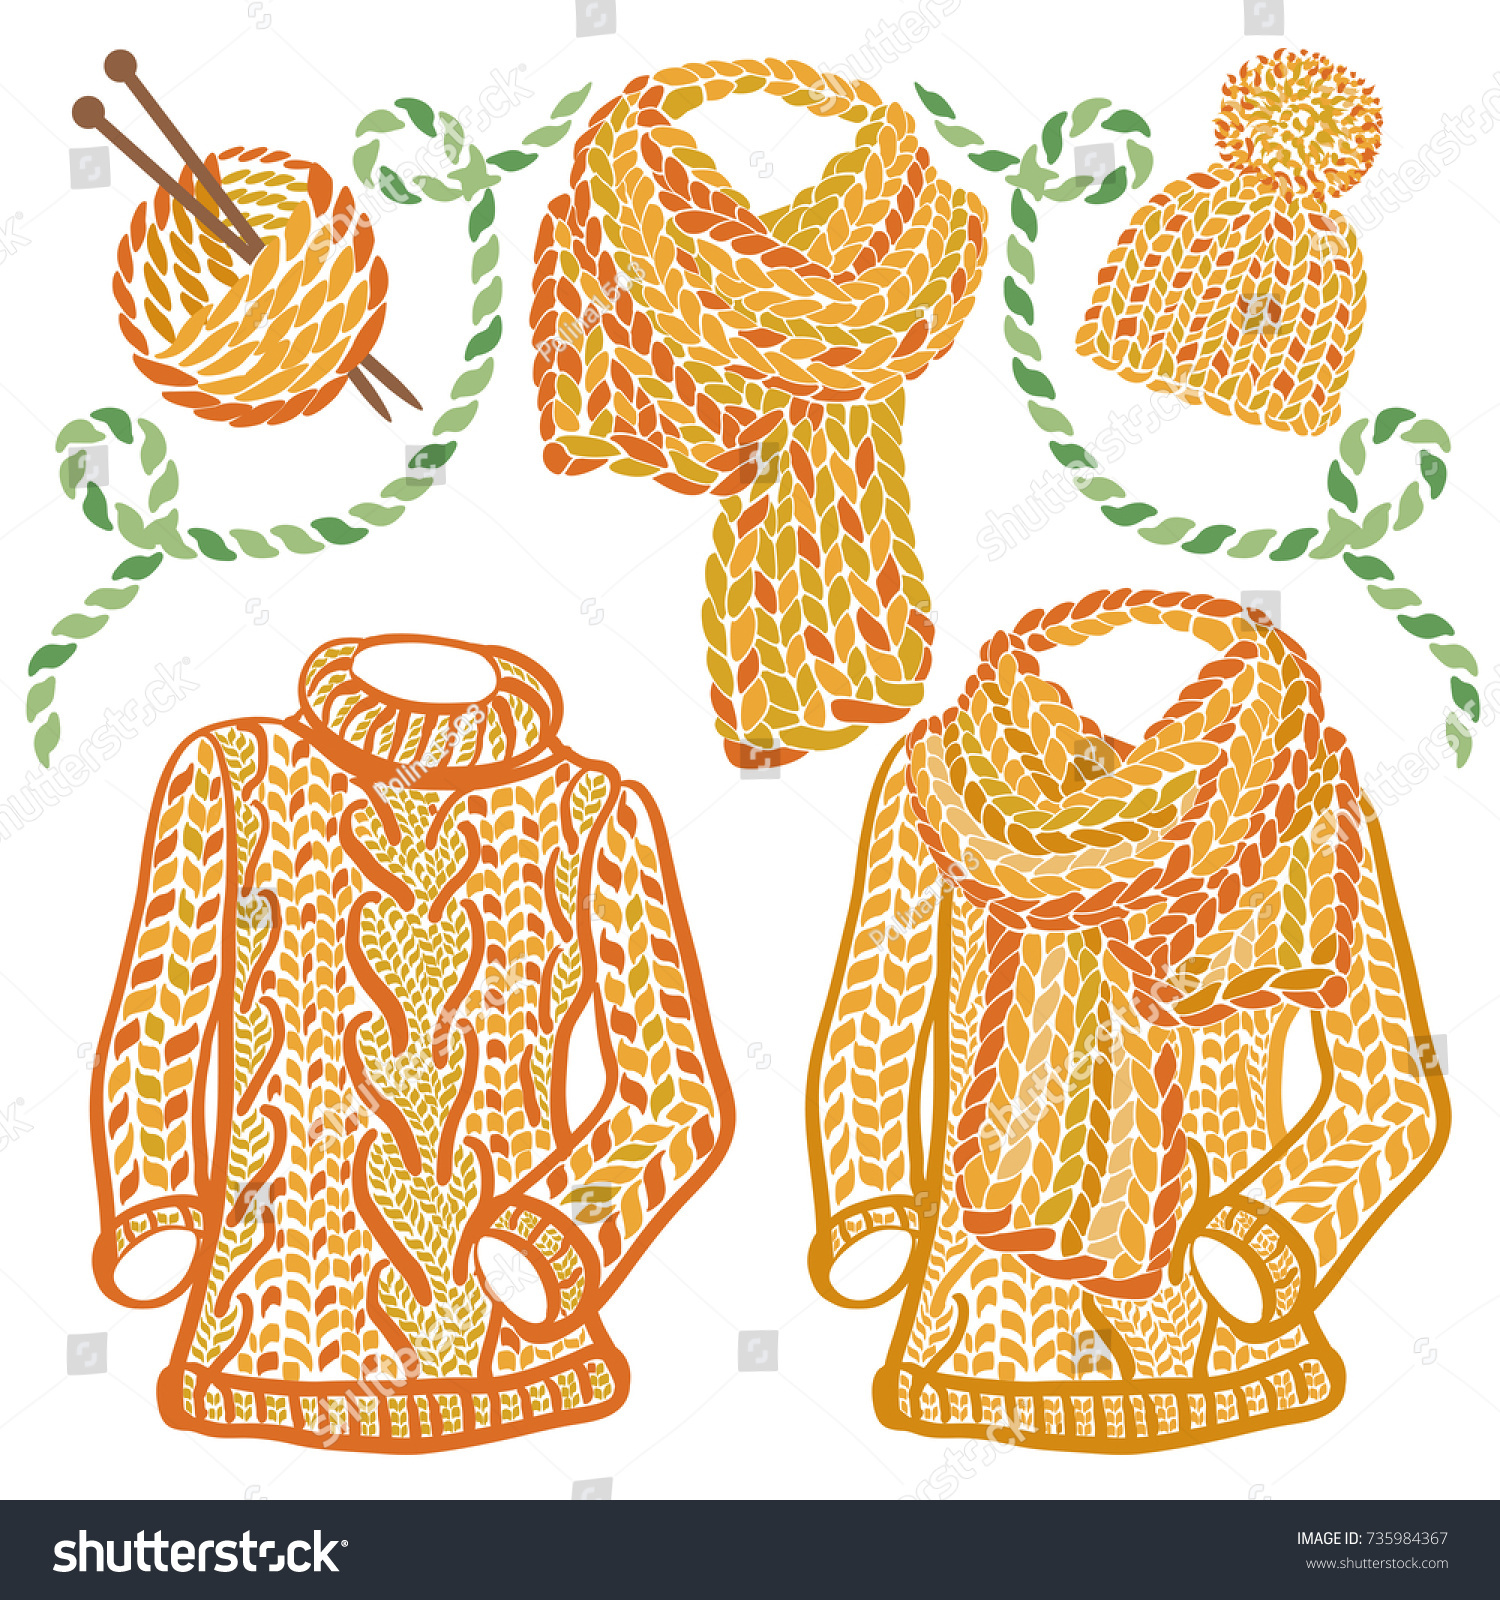 Handknitted Sweater And Yarn Ball Stock Illustration - Download Image Now -  iStock